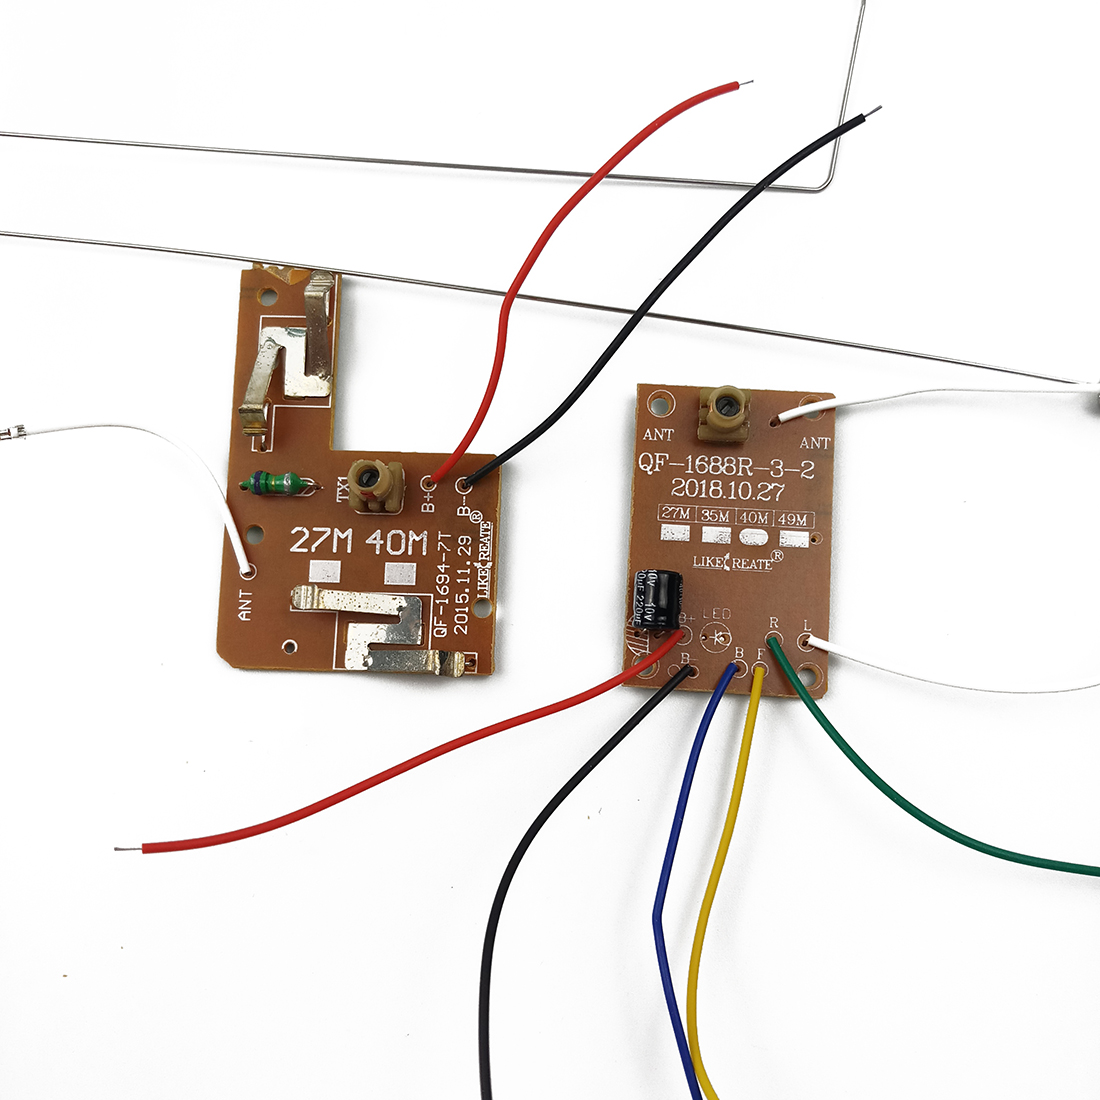 4CH <font><b>40MHZ</b></font> <font><b>Remote</b></font> Transmitter & Receiver Board with Antenna For DIY RC Car Vehicle Robot Truck Boat <font><b>Remote</b></font> <font><b>Control</b></font> Toy Accessory image